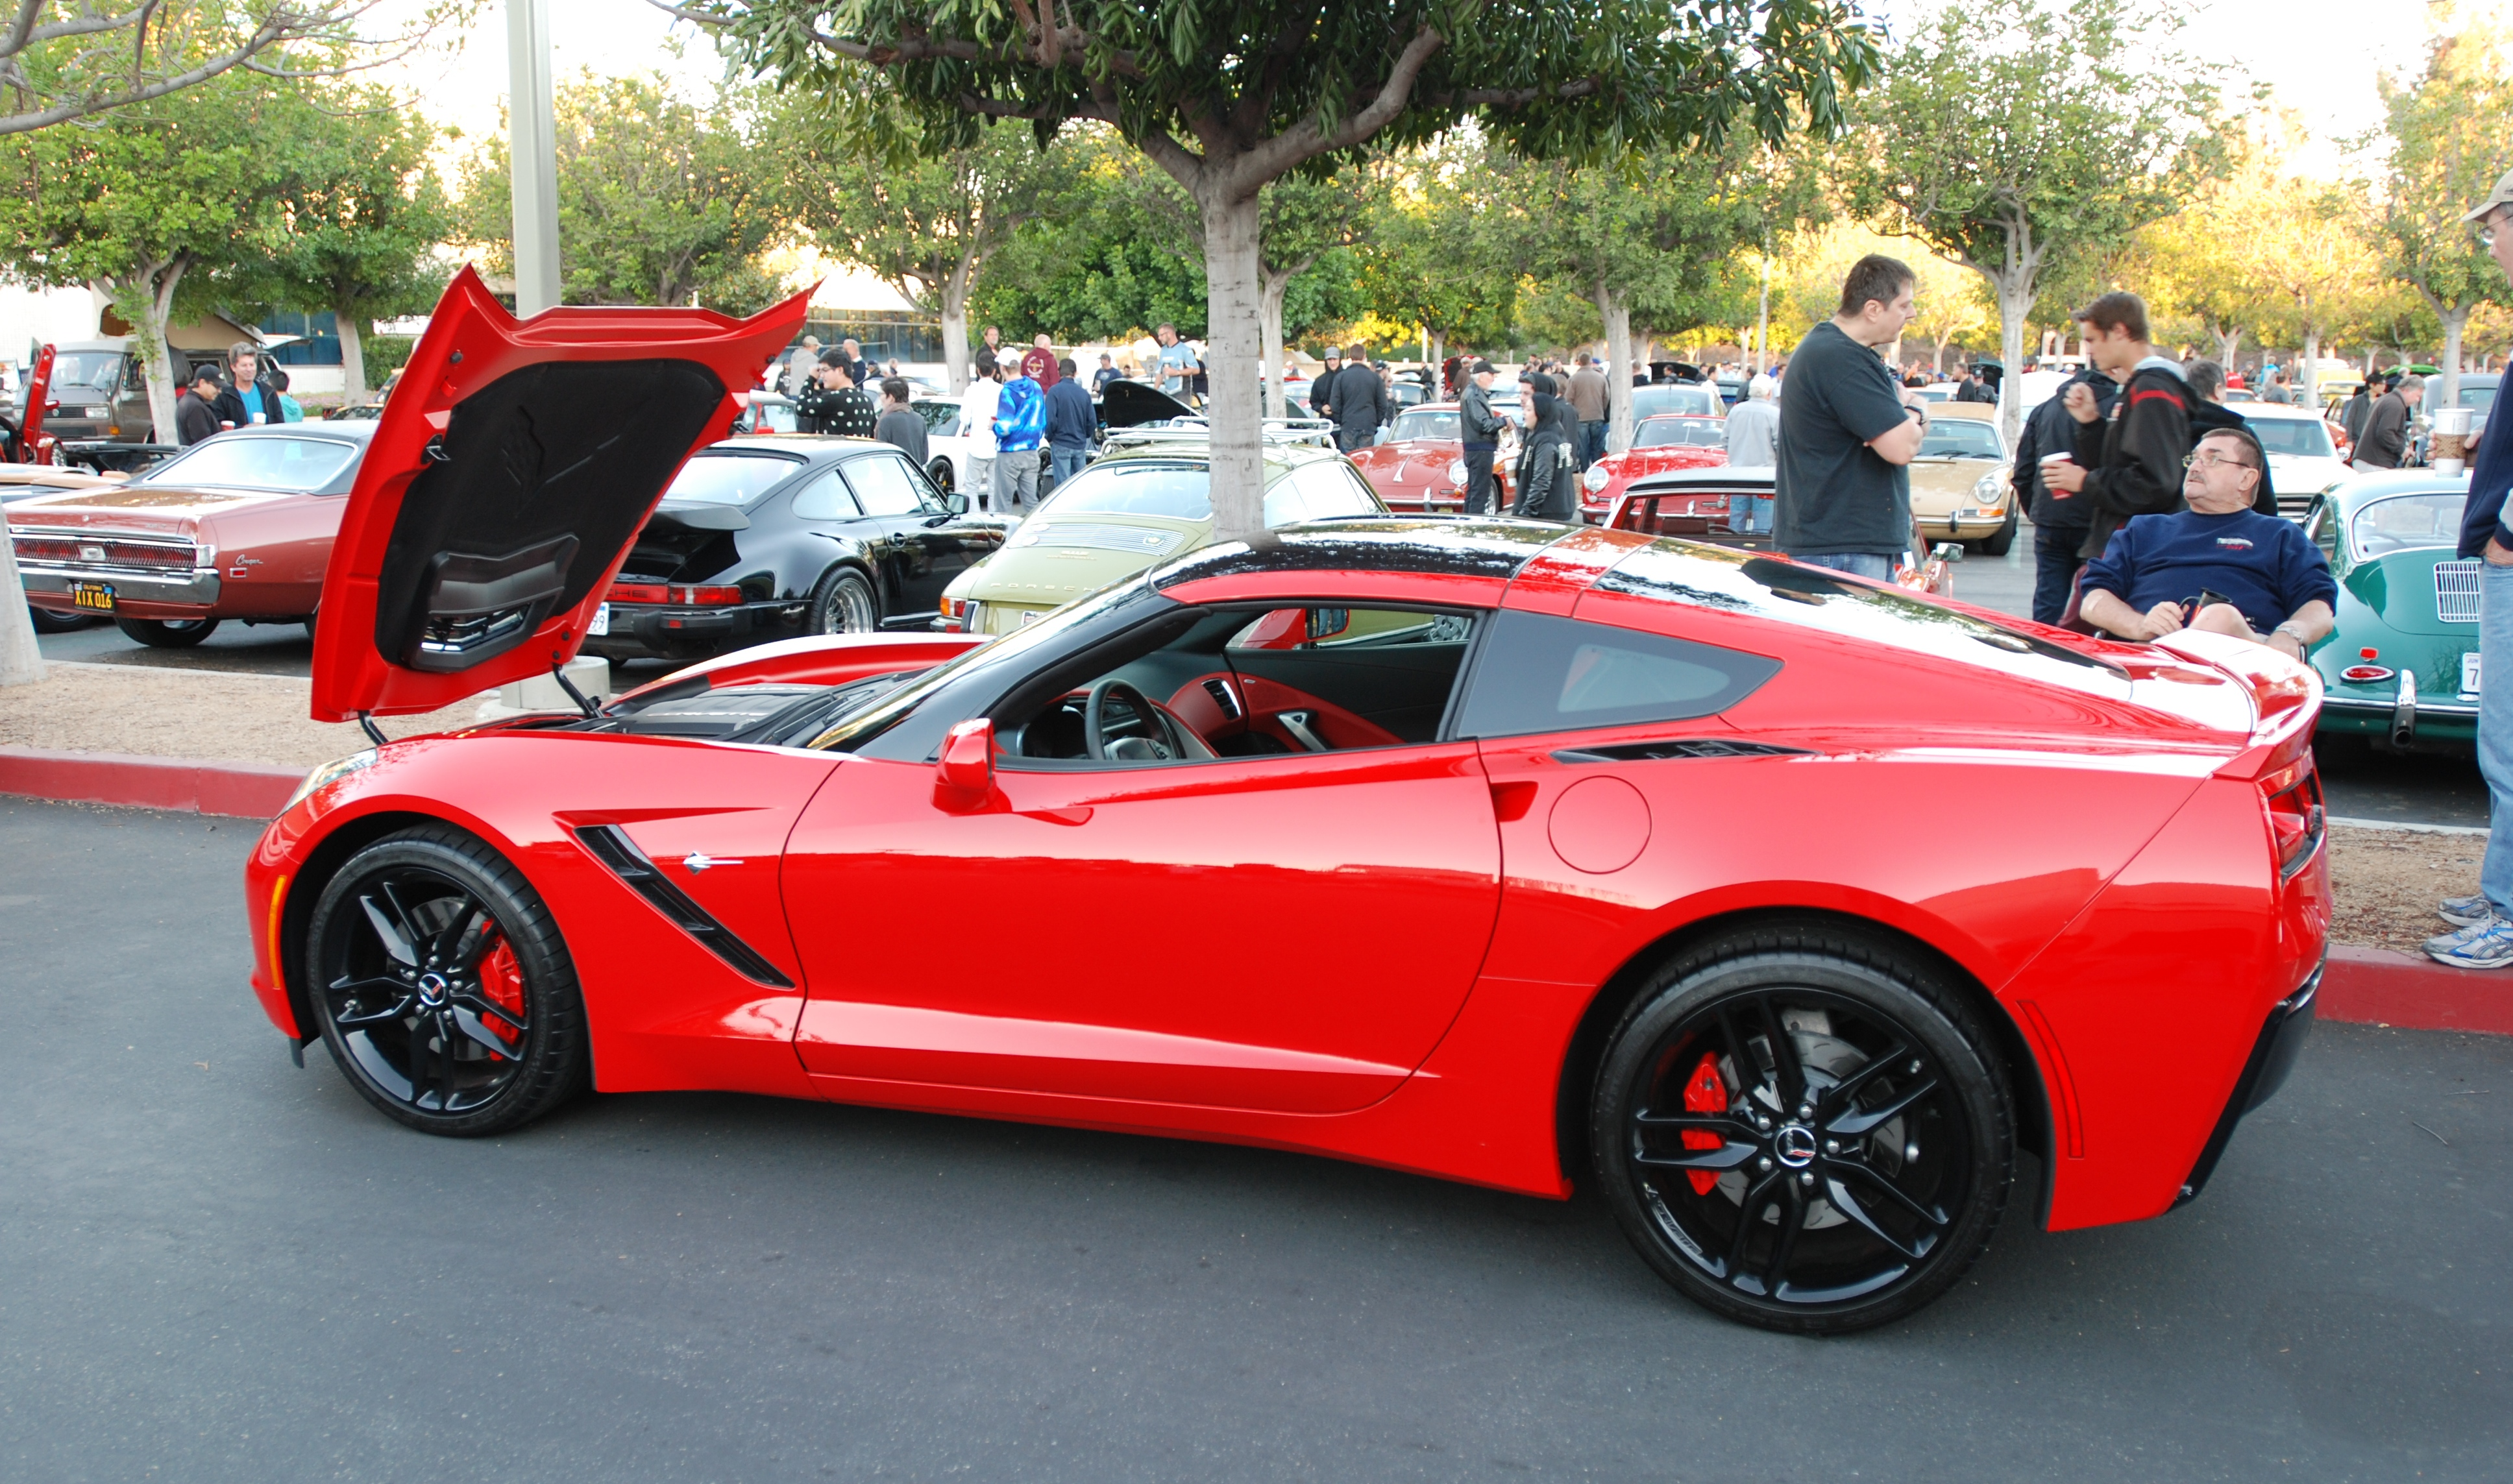 2014 torch red corvette sting ray_ 3 4 side view_cars coffee irvine_november 2